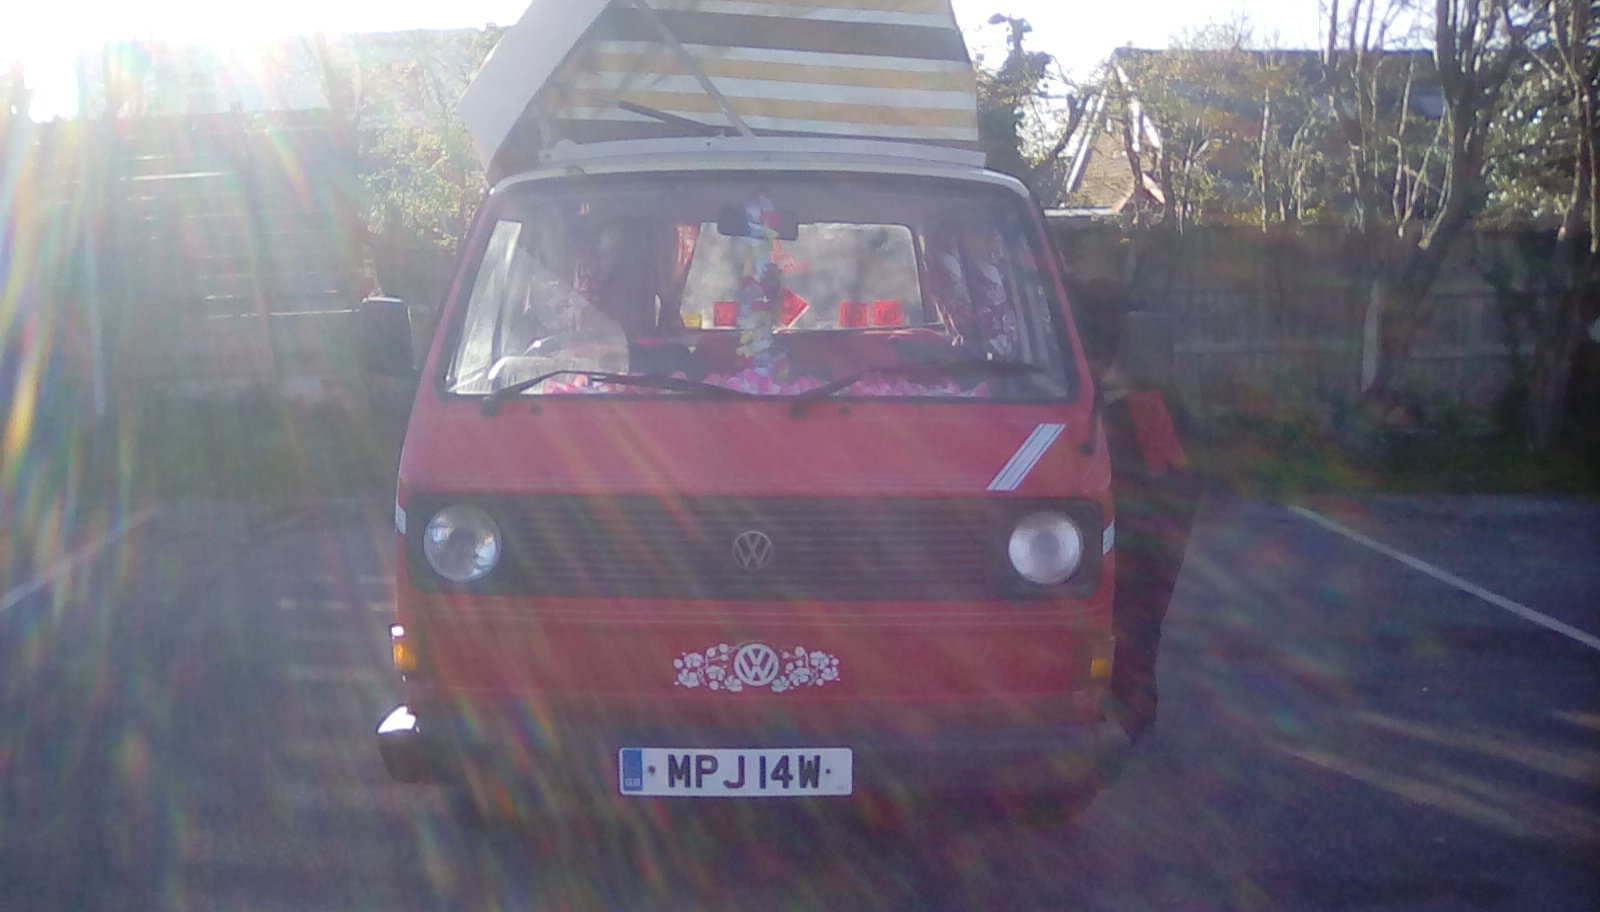 1982 VW campervan 'ruby'  For Sale (picture 1 of 6)